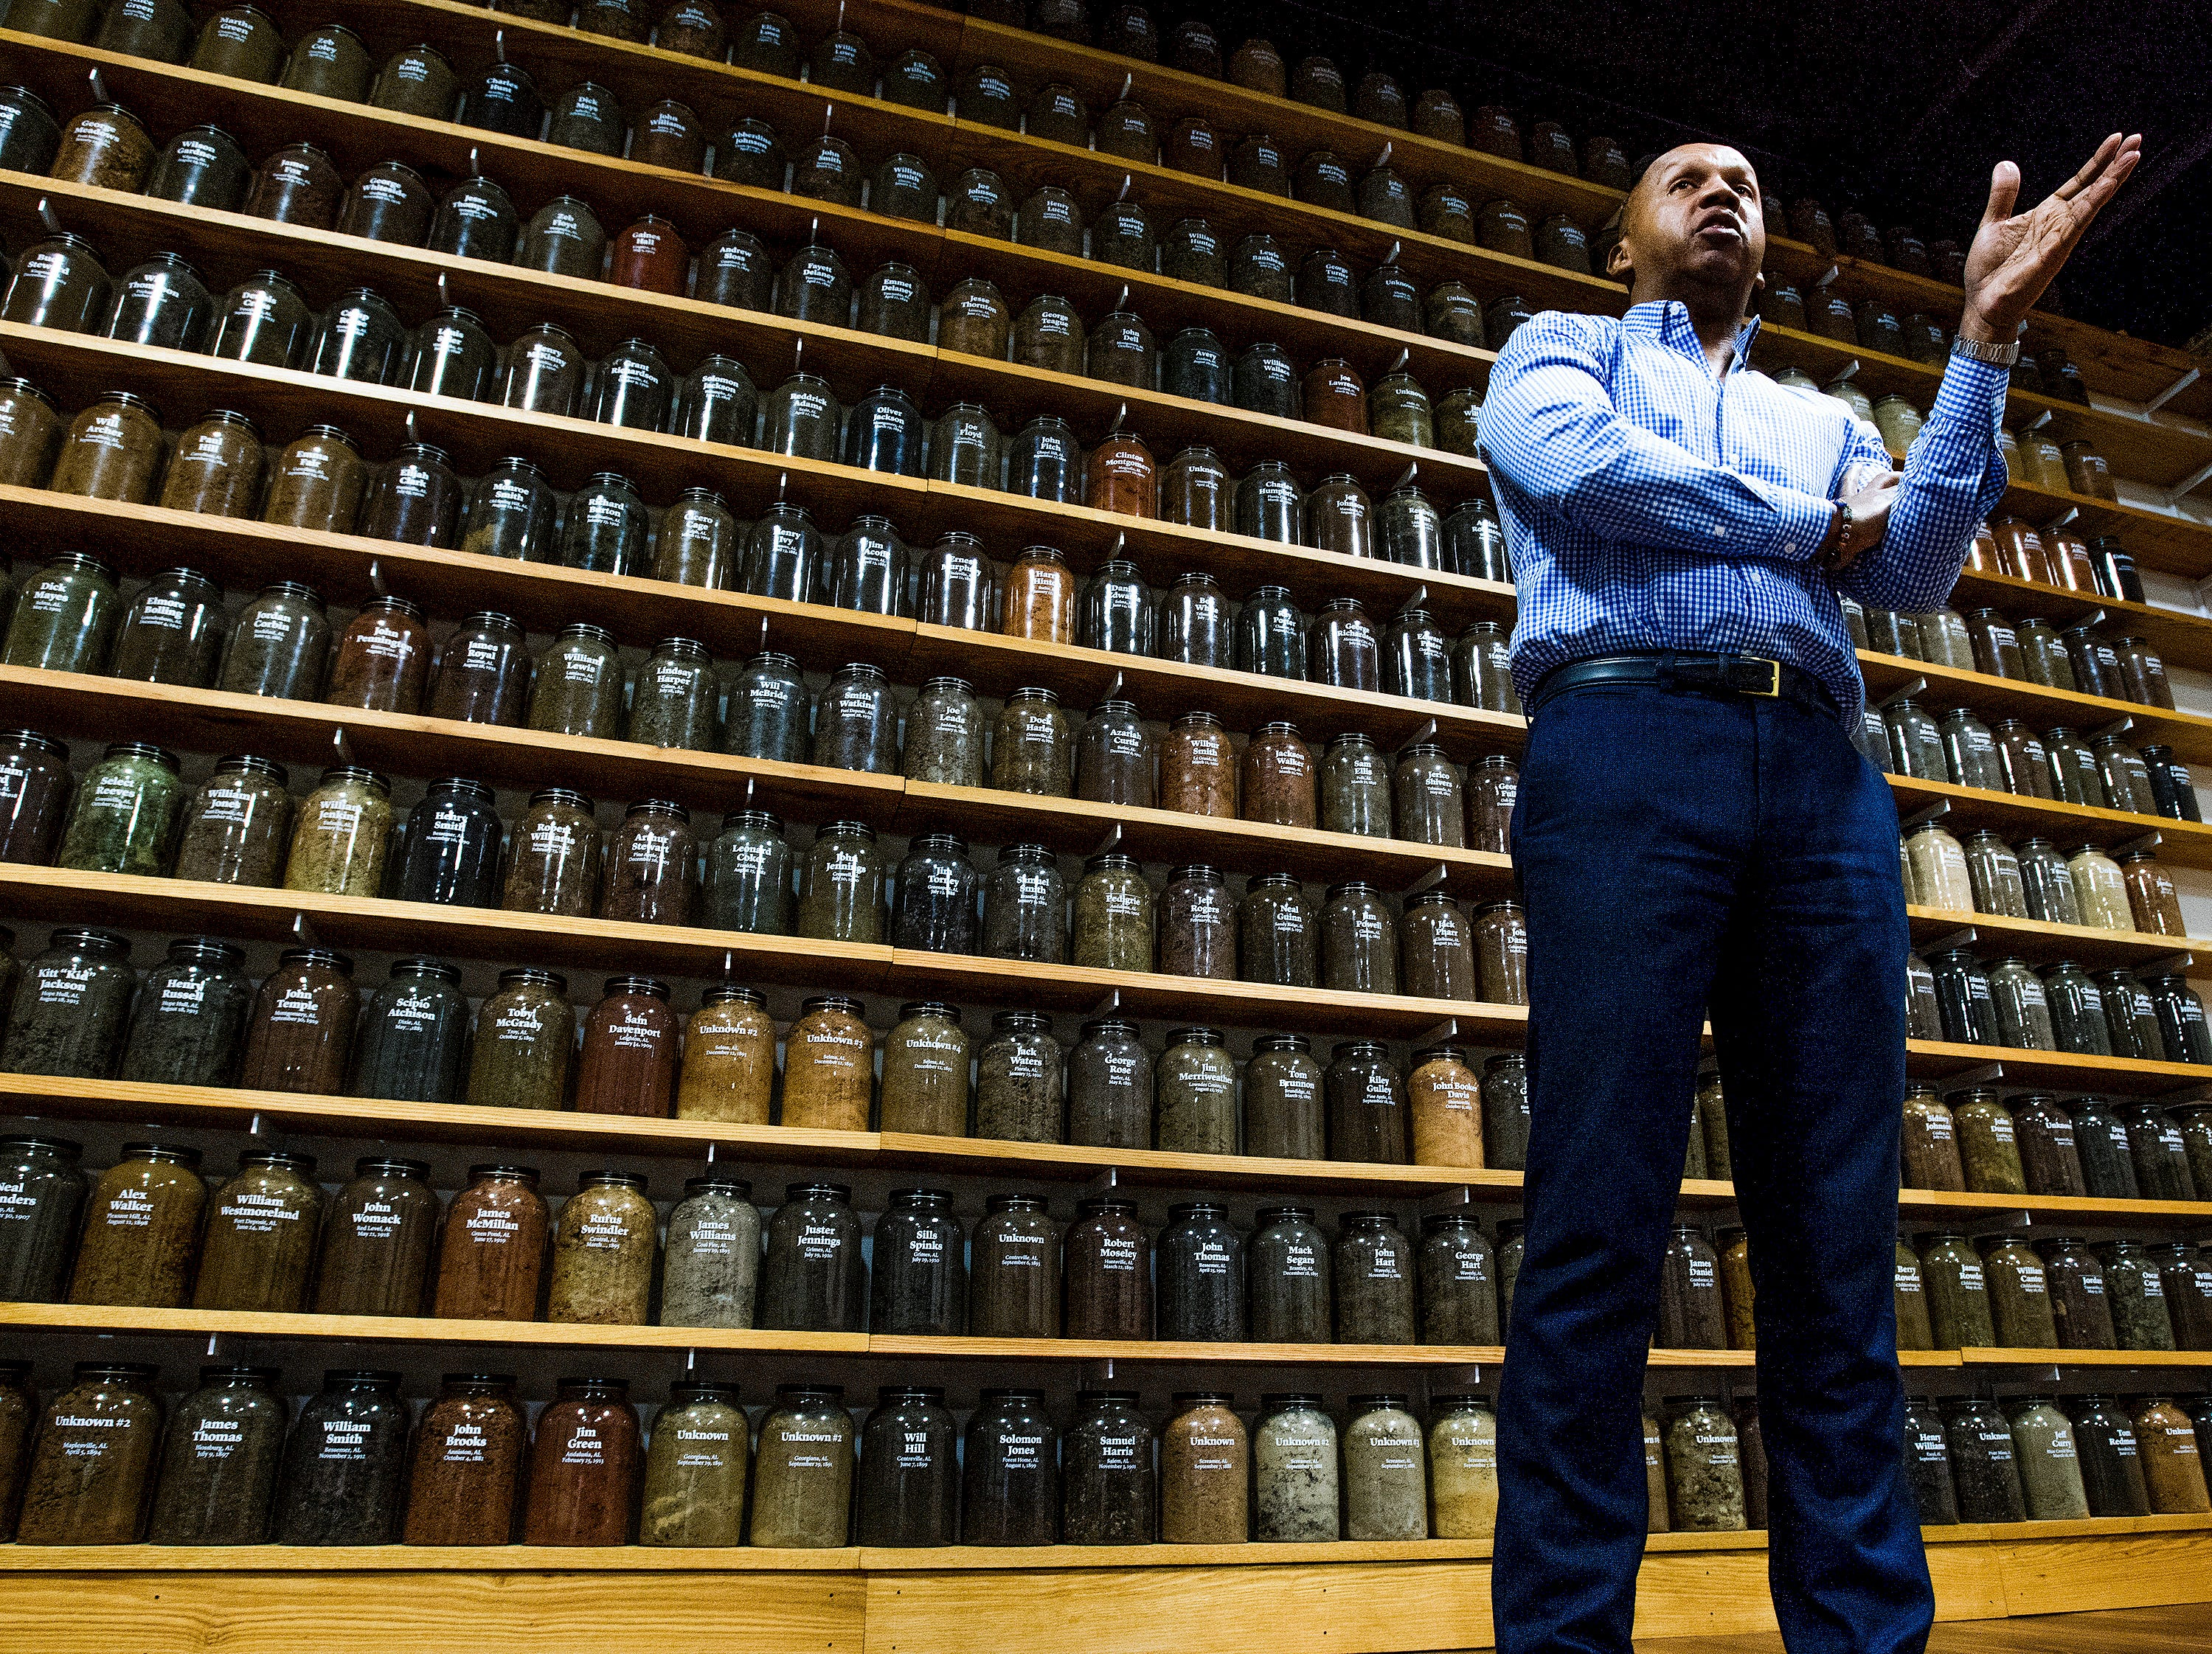 Bryan Stevenson, Executive Director of the Equal Justice Initiative, is shown standing before jars containing soil from the sites of confirmed lynchings in the state of Alabama at the EJI offices in Montgomery, Ala. on Friday April 13, 2018.